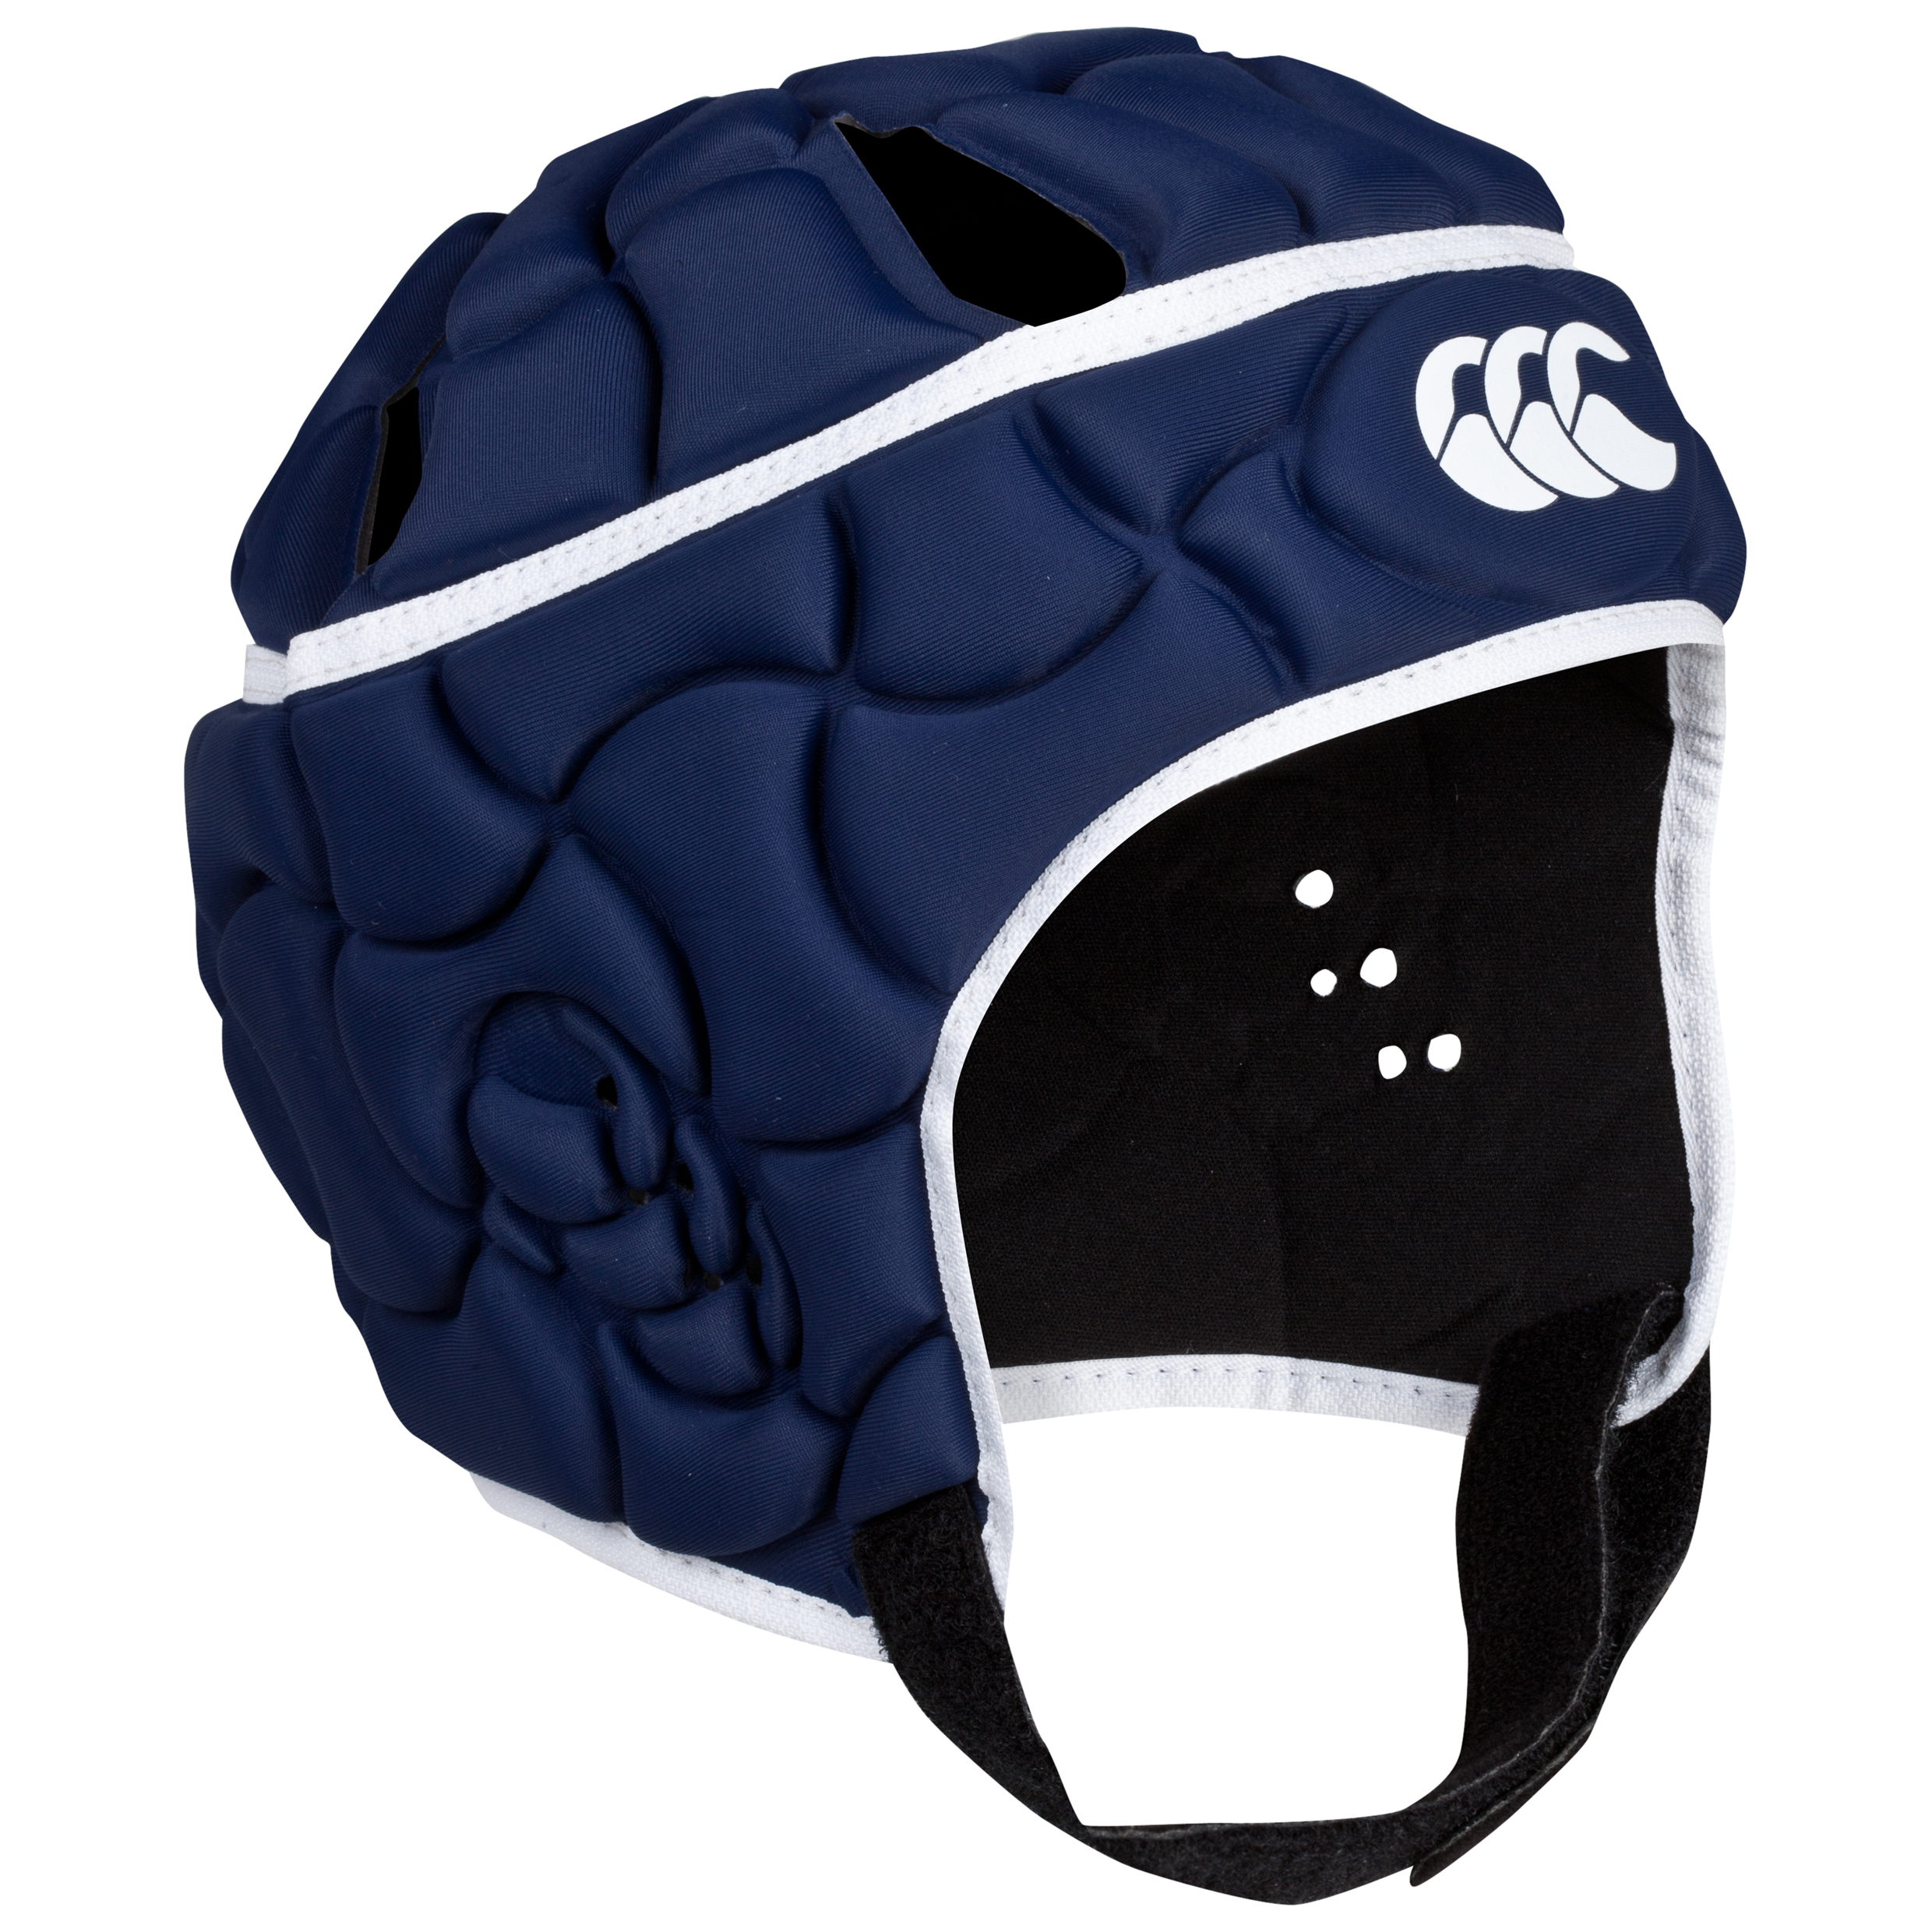 Canterbury Club Plus Headguard Navy